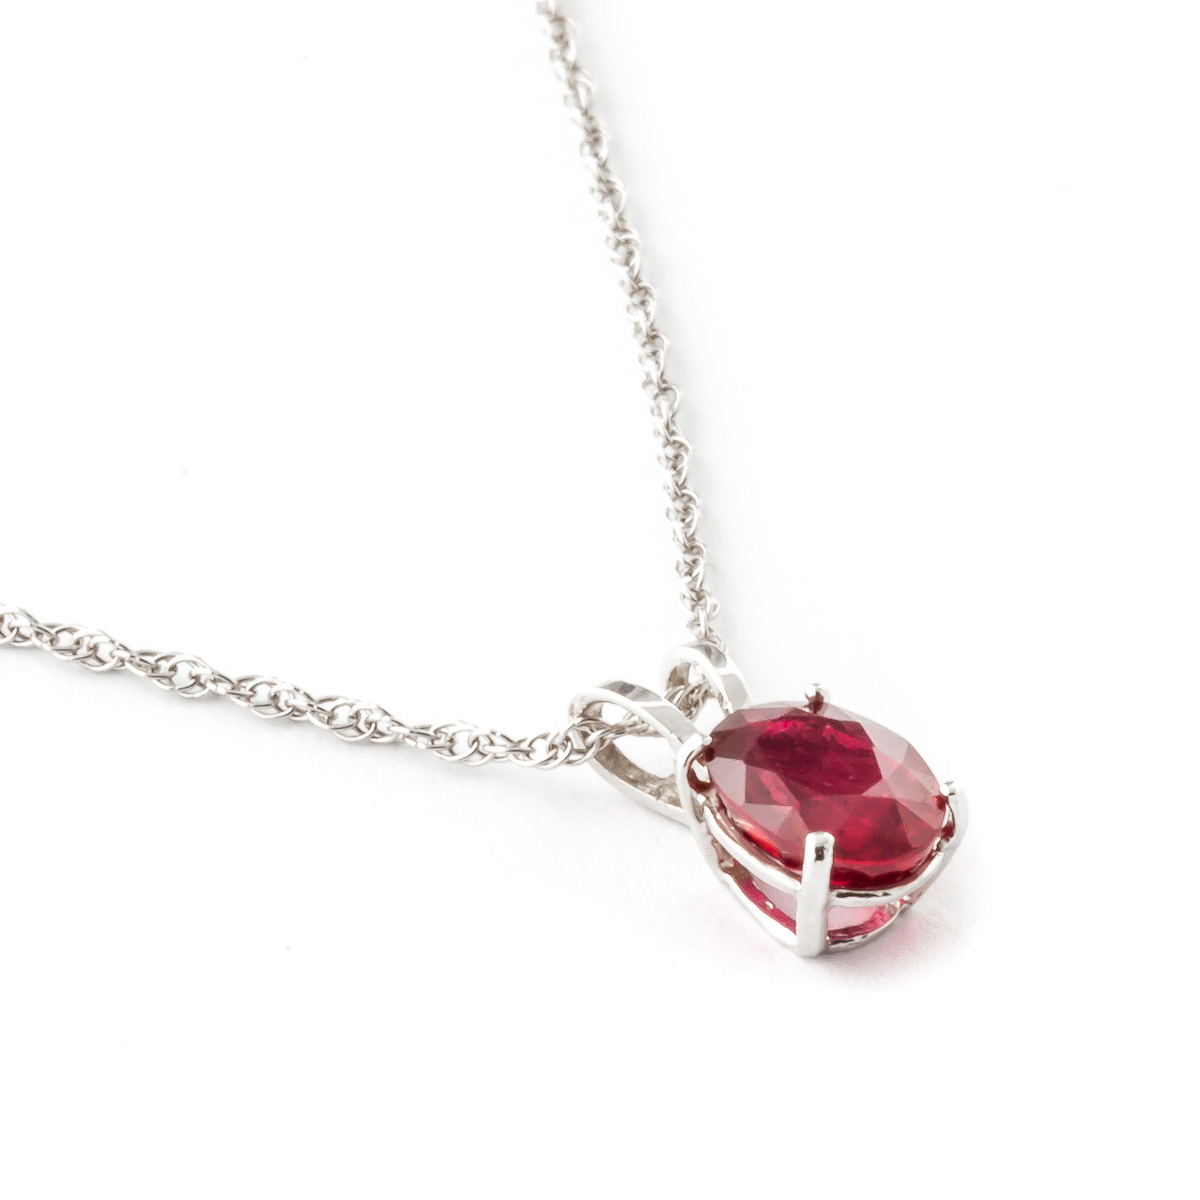 Oval Cut Ruby Pendant Necklace 1.0ct in 14K White Gold